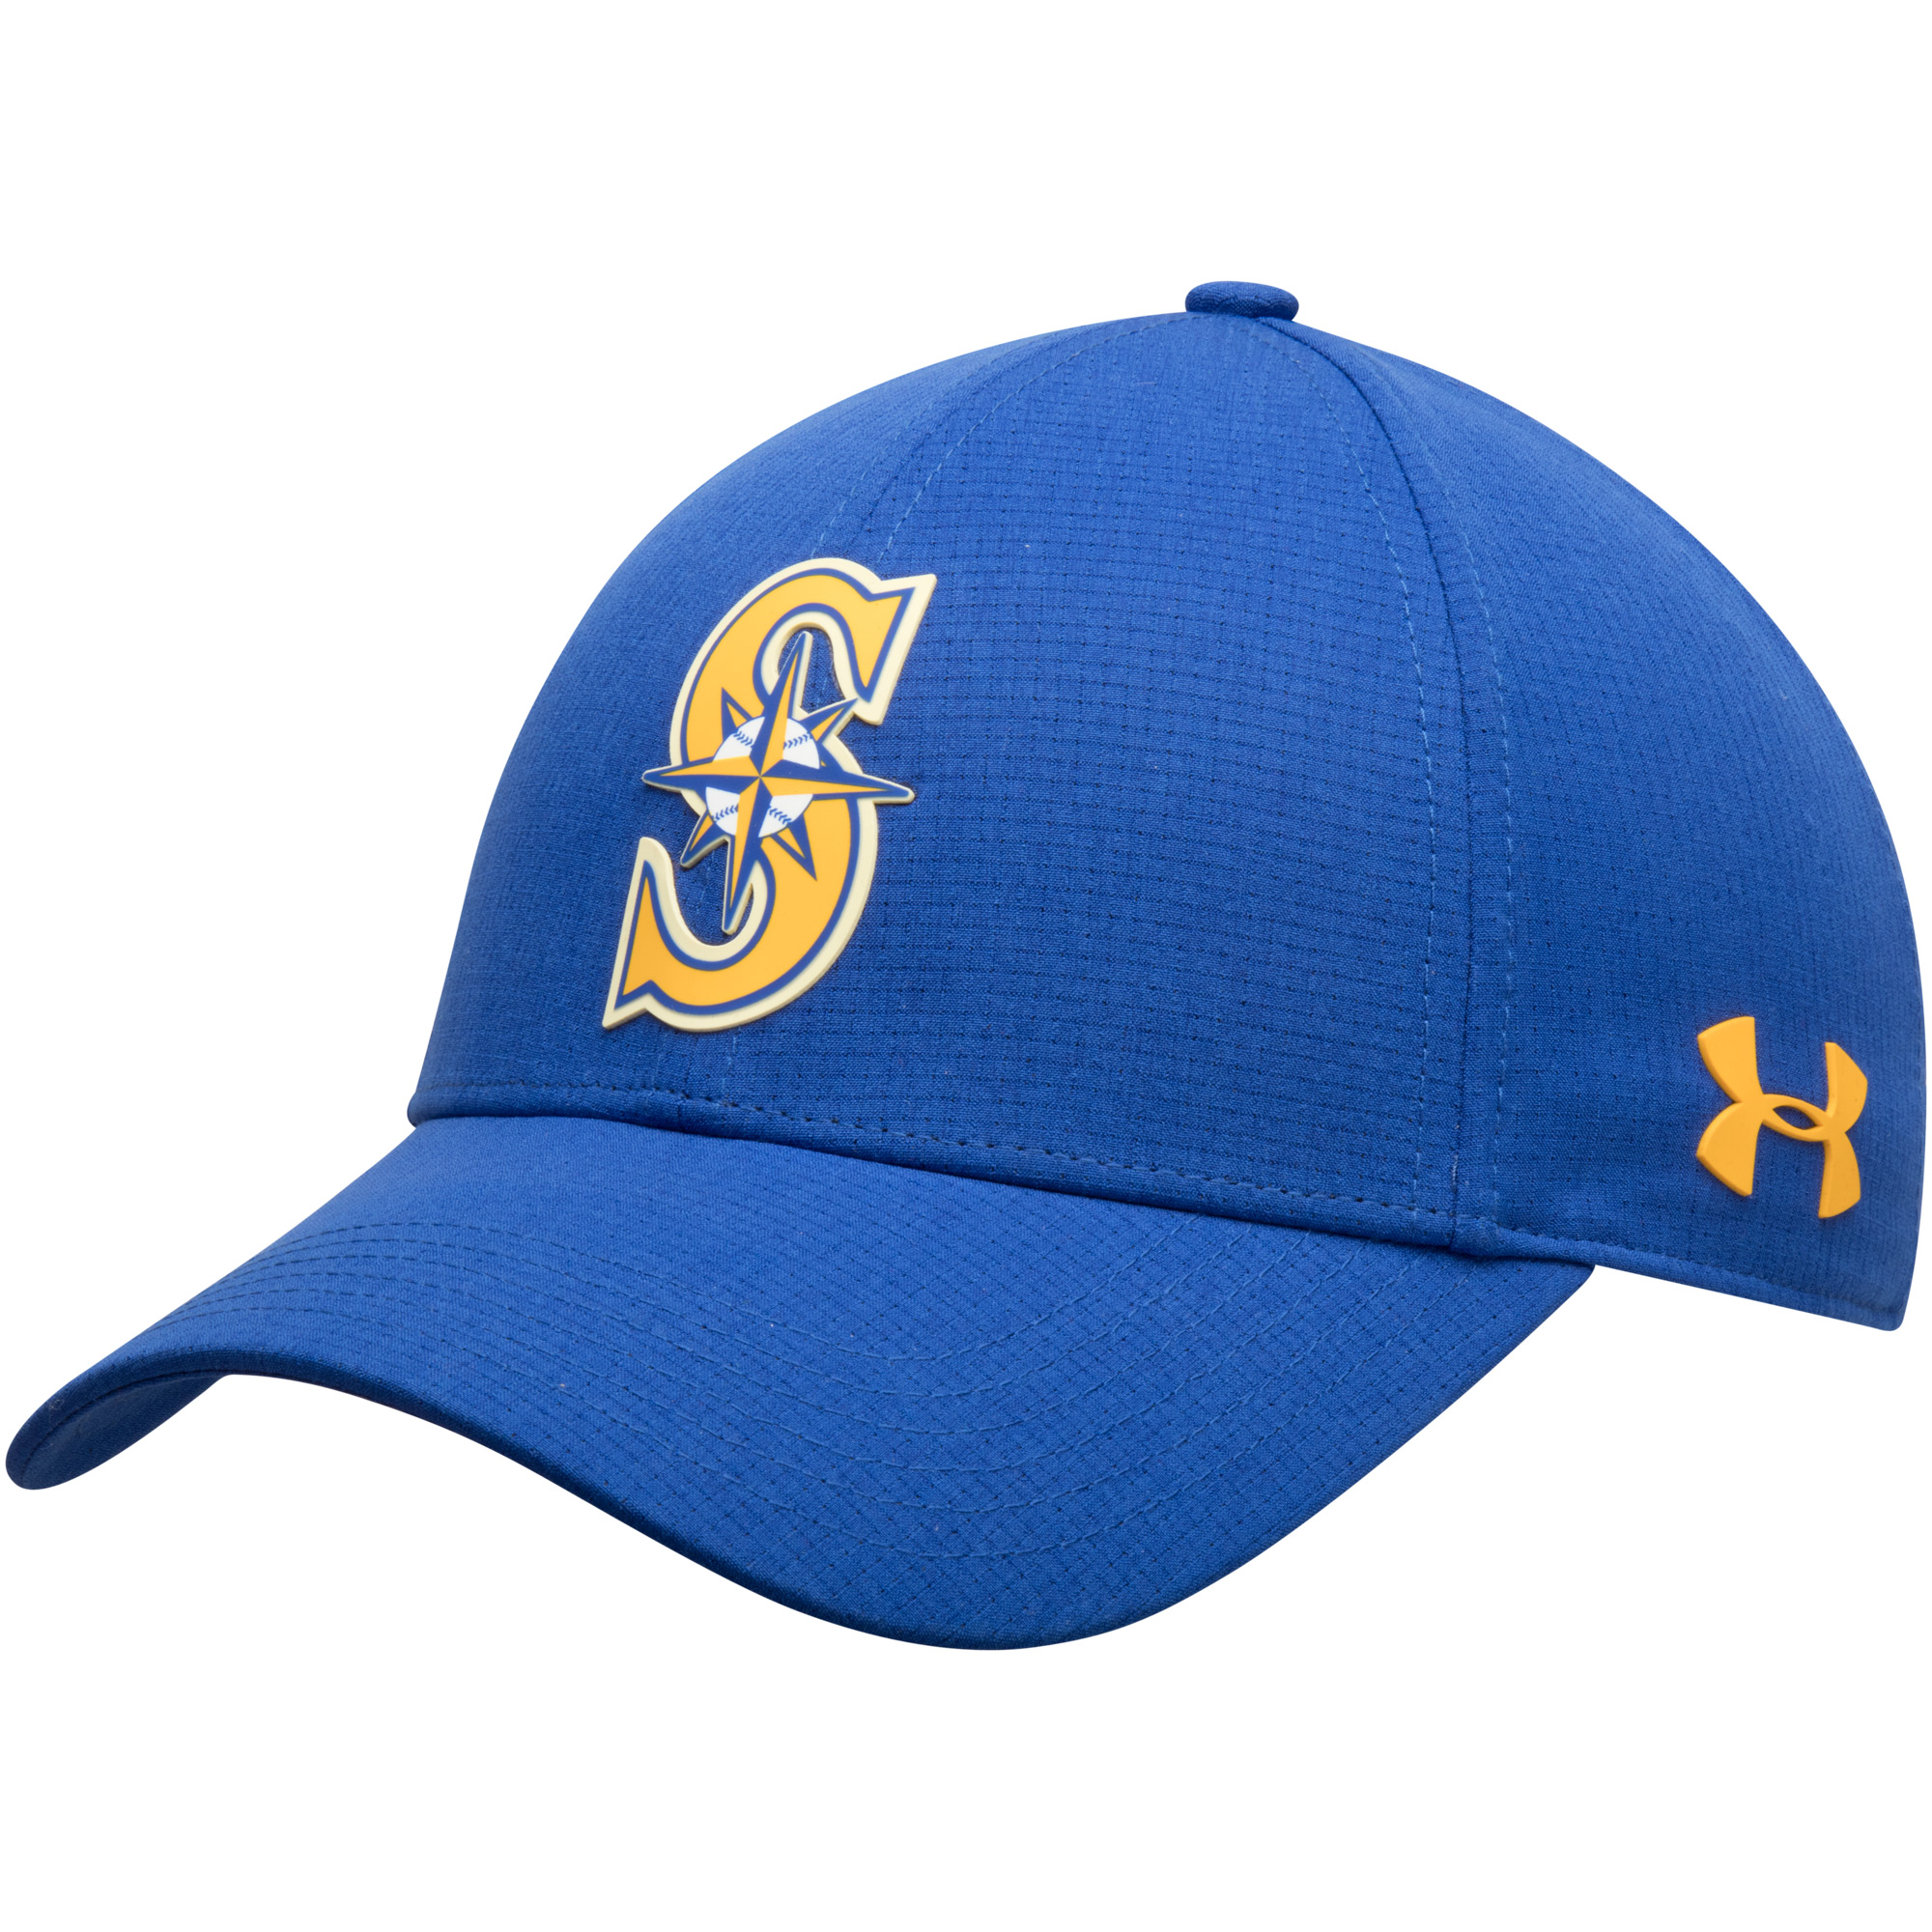 Seattle Mariners Under Armour MLB Driver Cap 2.0 Adjustable Hat - Blue - OSFA